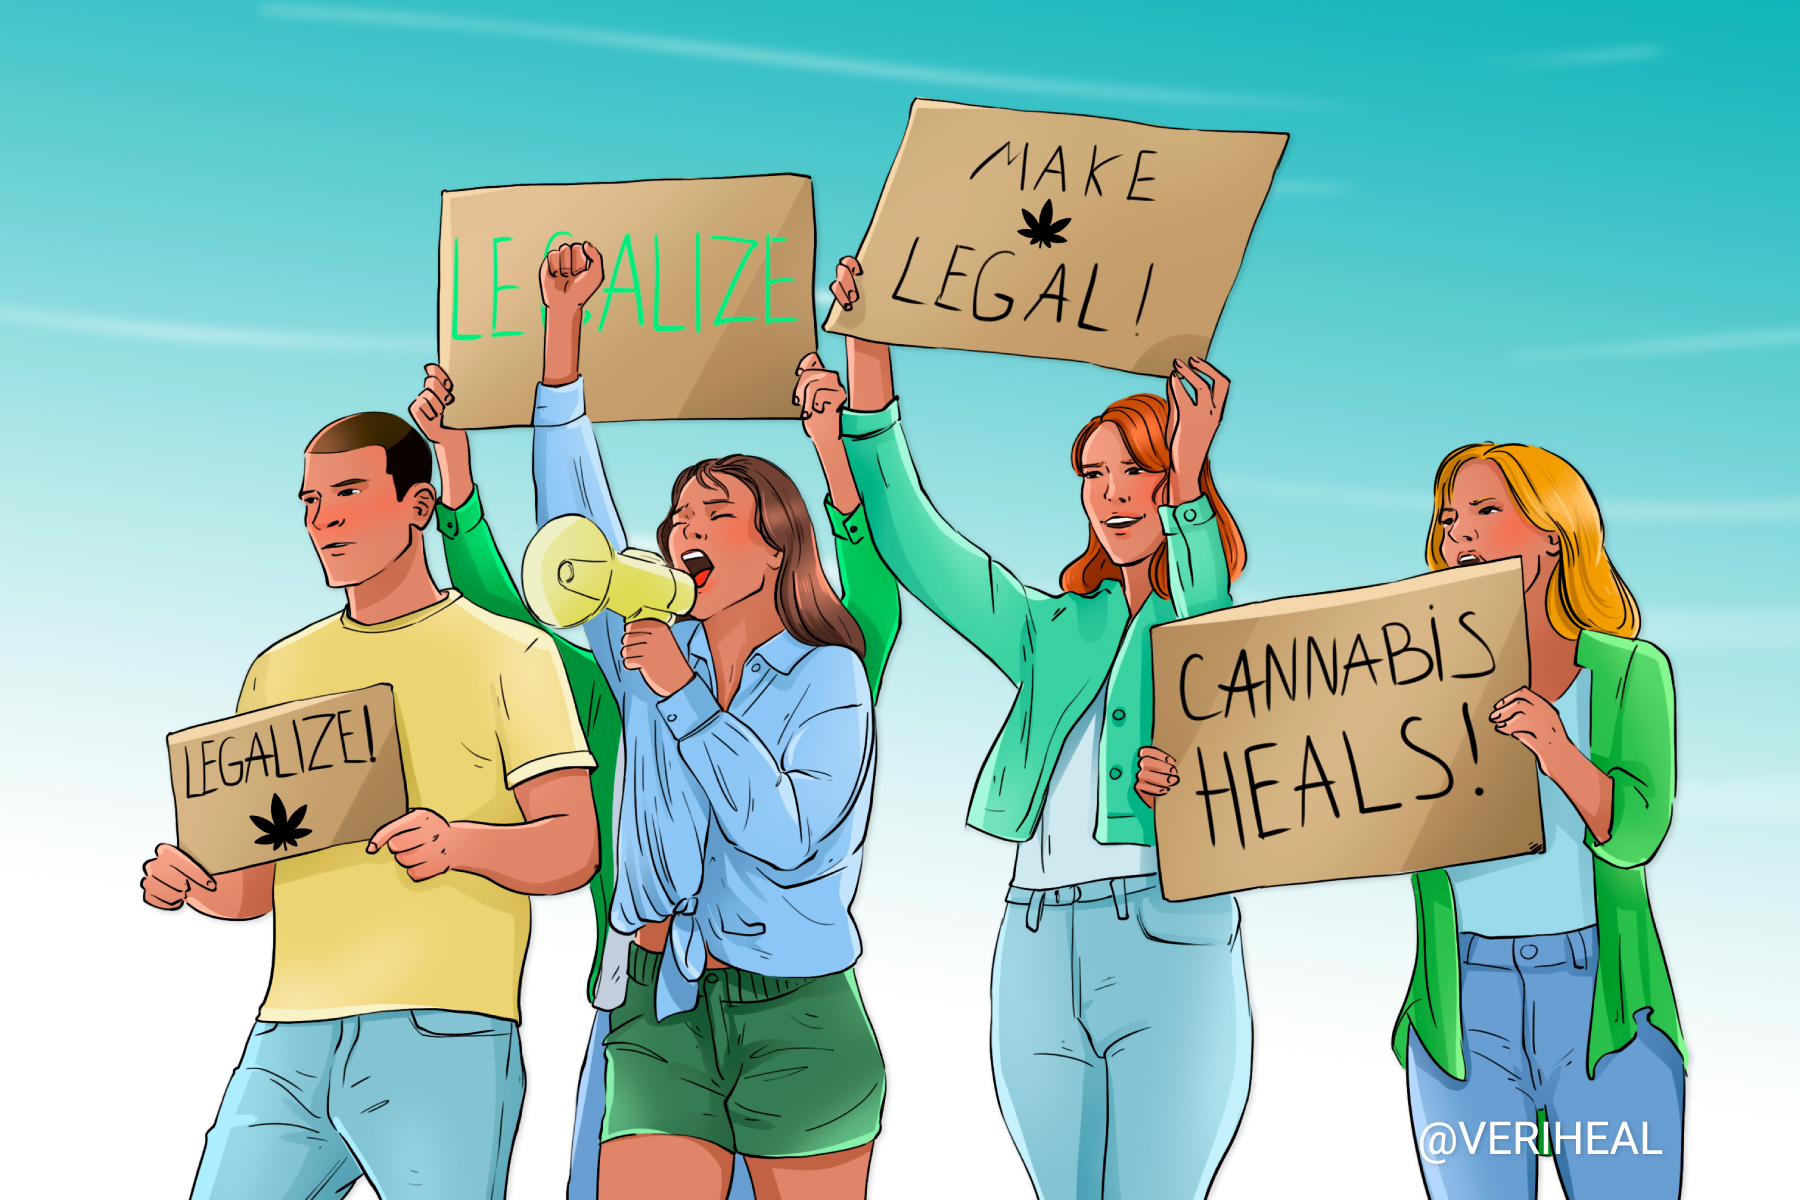 Will Existing Medical Cannabis Markets Survive Federal Legalization?